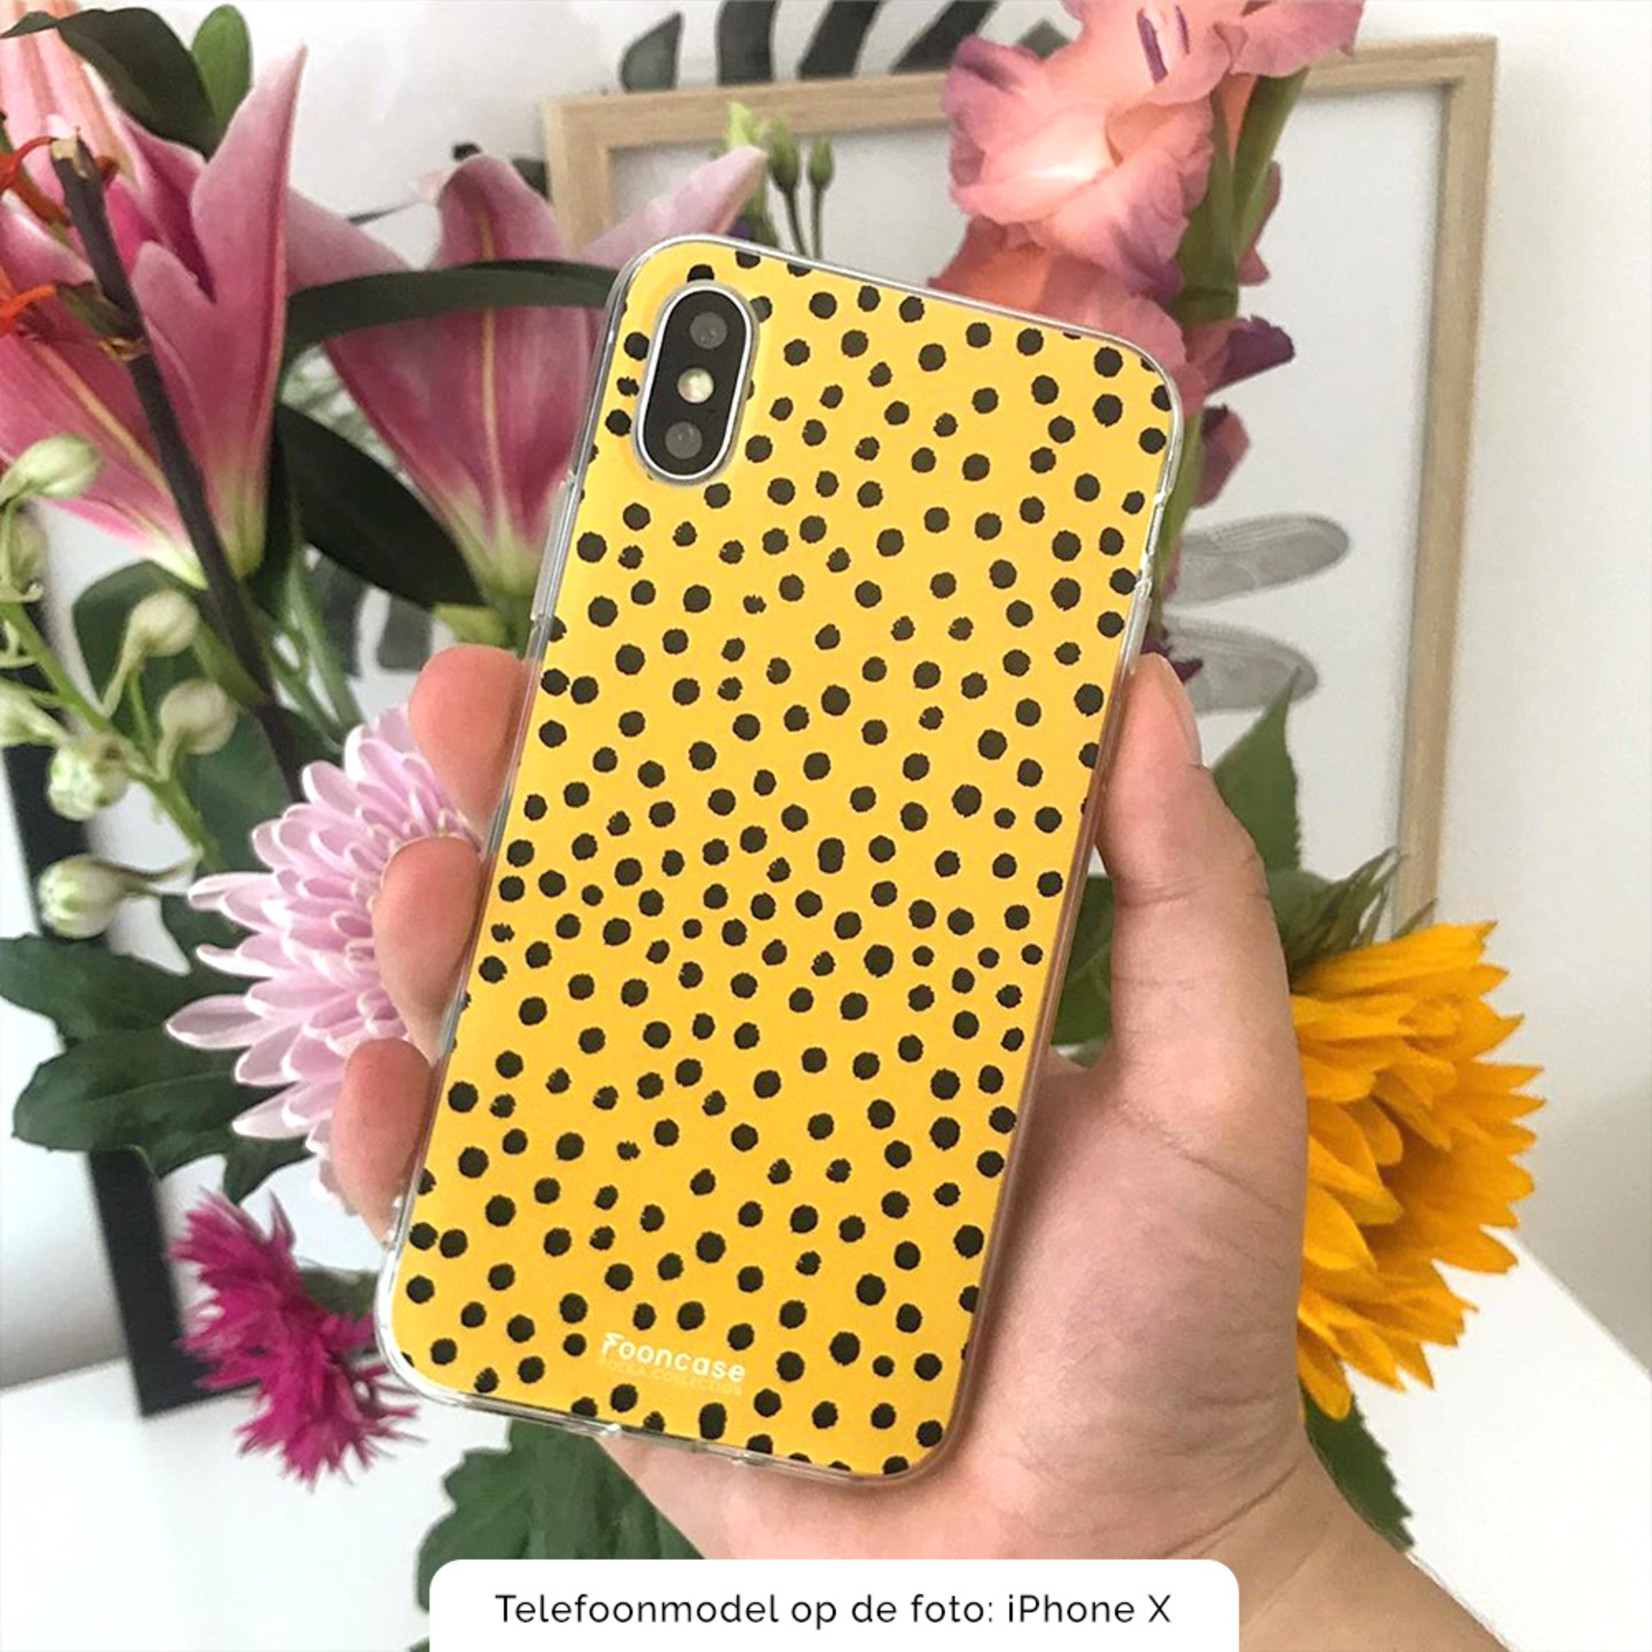 FOONCASE iPhone 12 Pro Max hoesje TPU Soft Case - Back Cover - POLKA COLLECTION / Stipjes / Stippen / Oker Geel